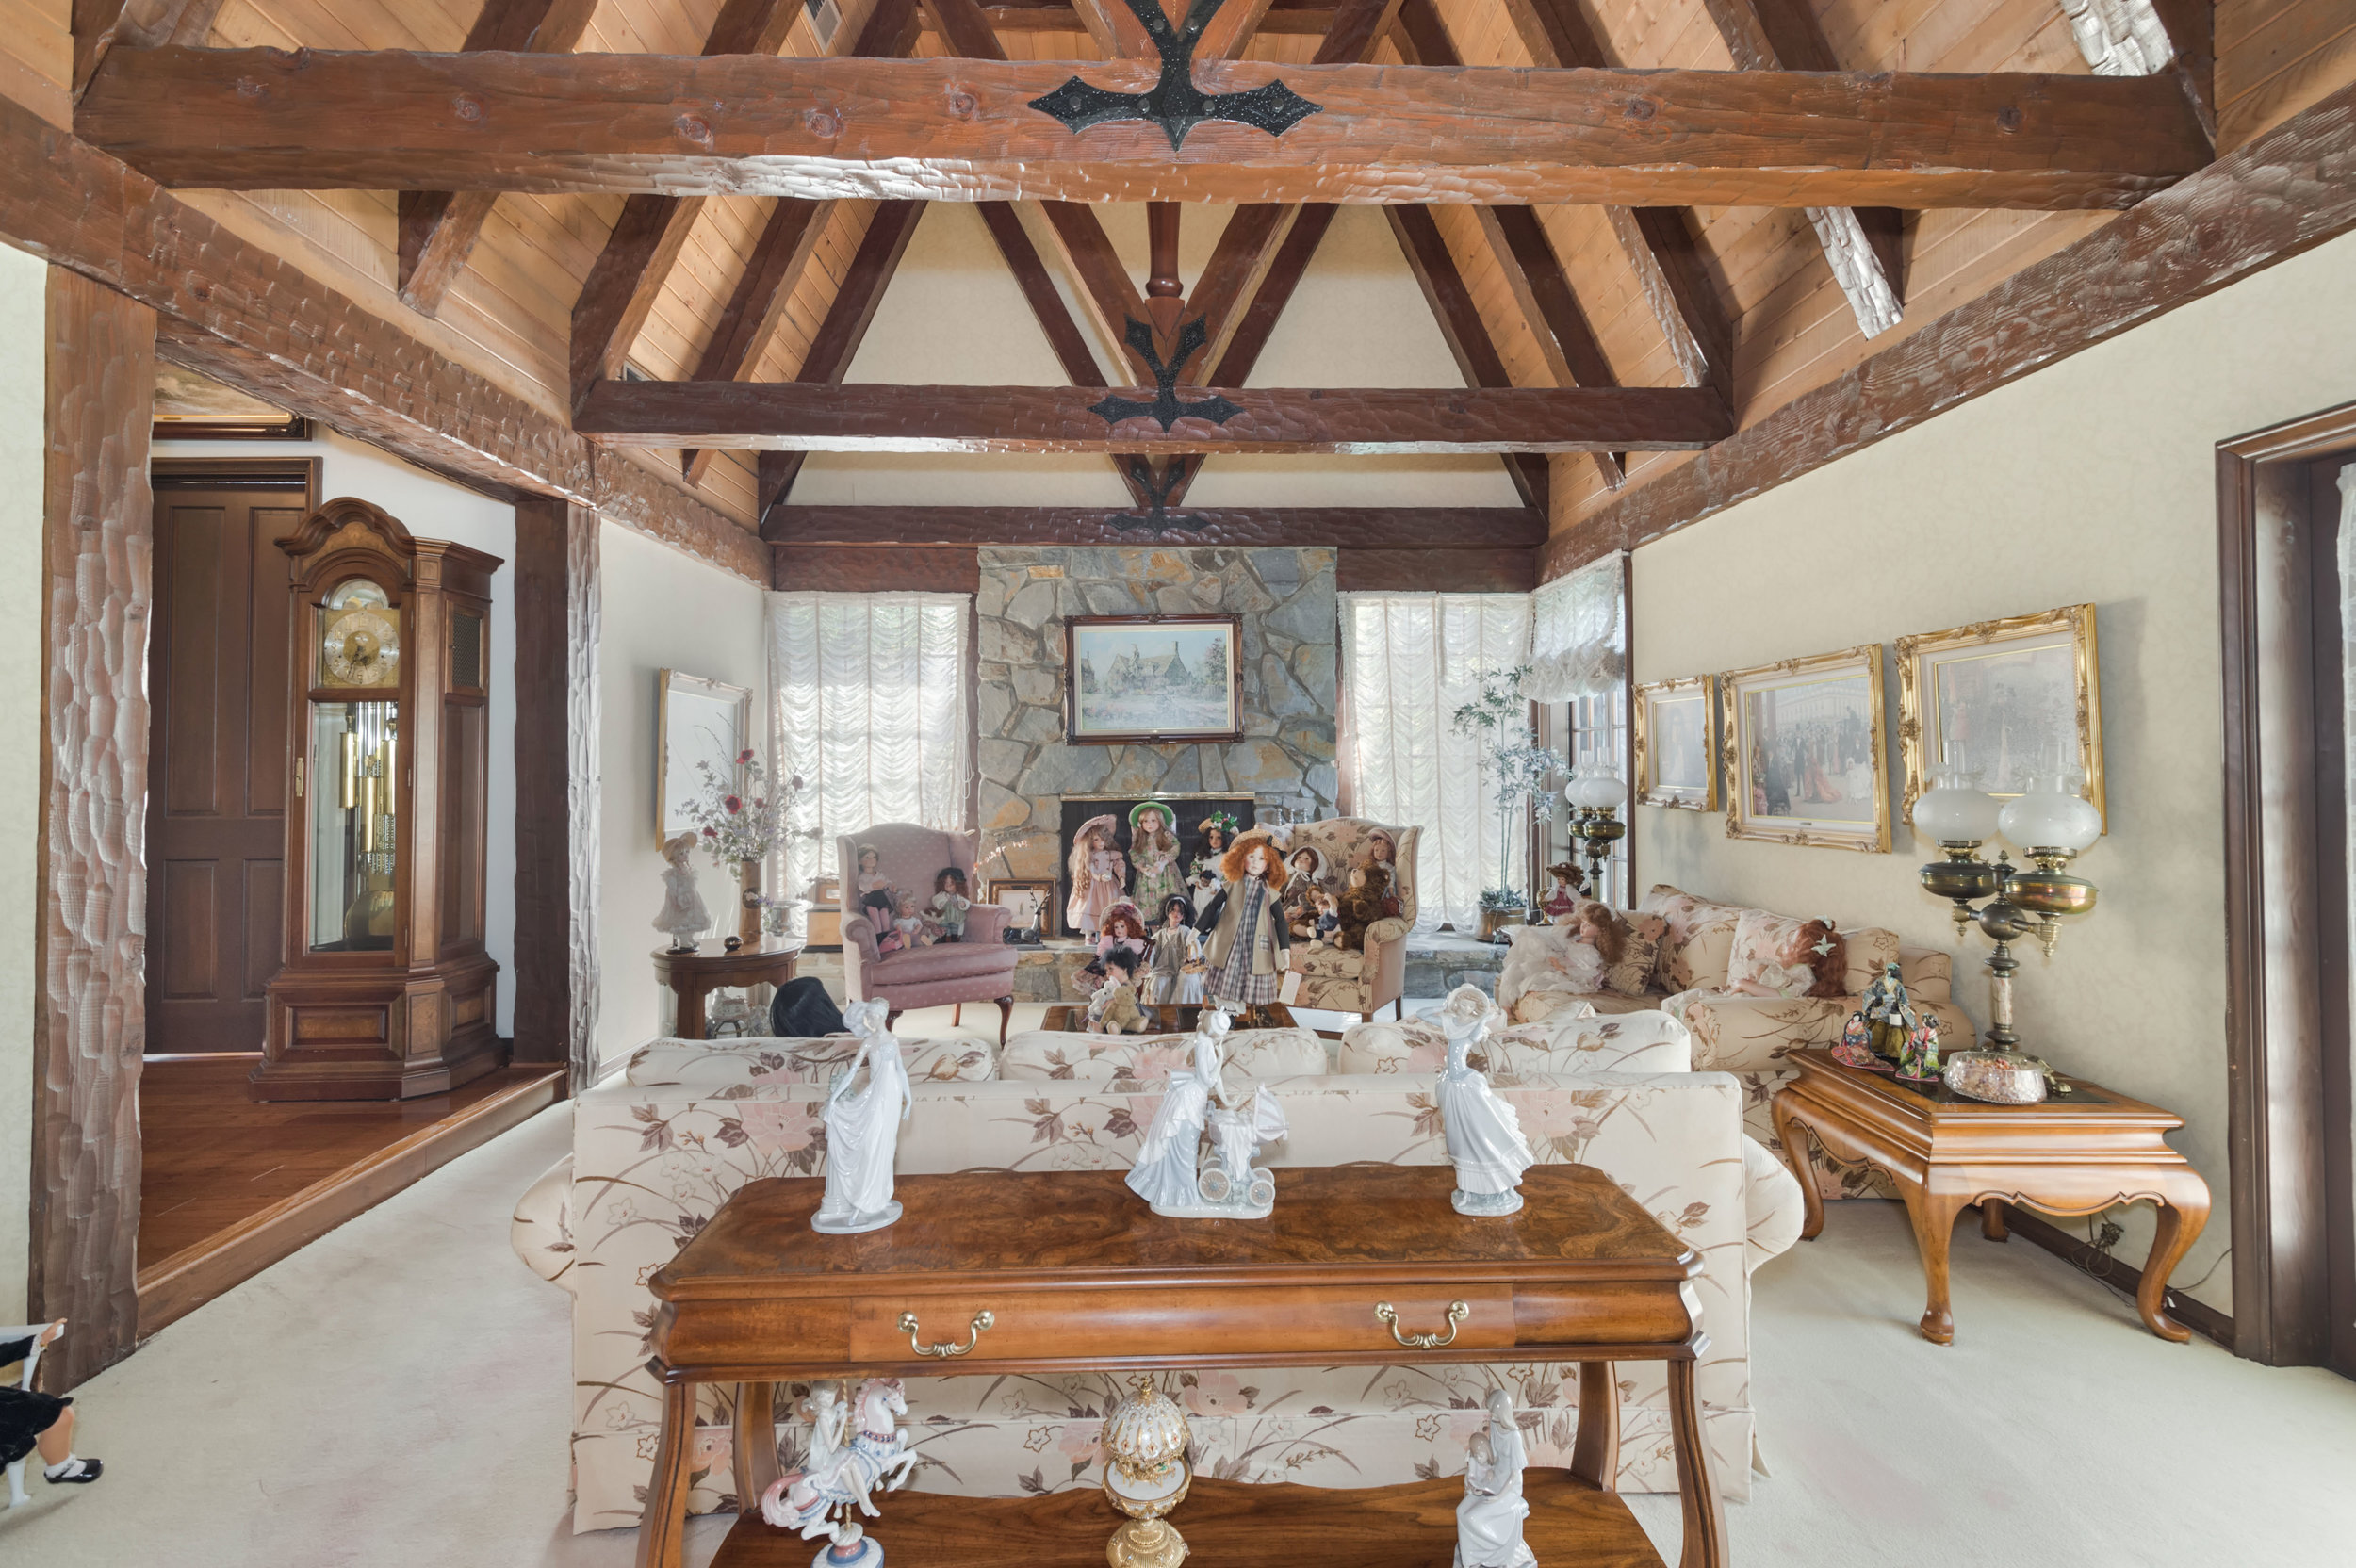 007 Living 3191 Toppington Drive Beverly Hills For Sale Lease The Malibu Life Team Luxury Real Estate.jpg